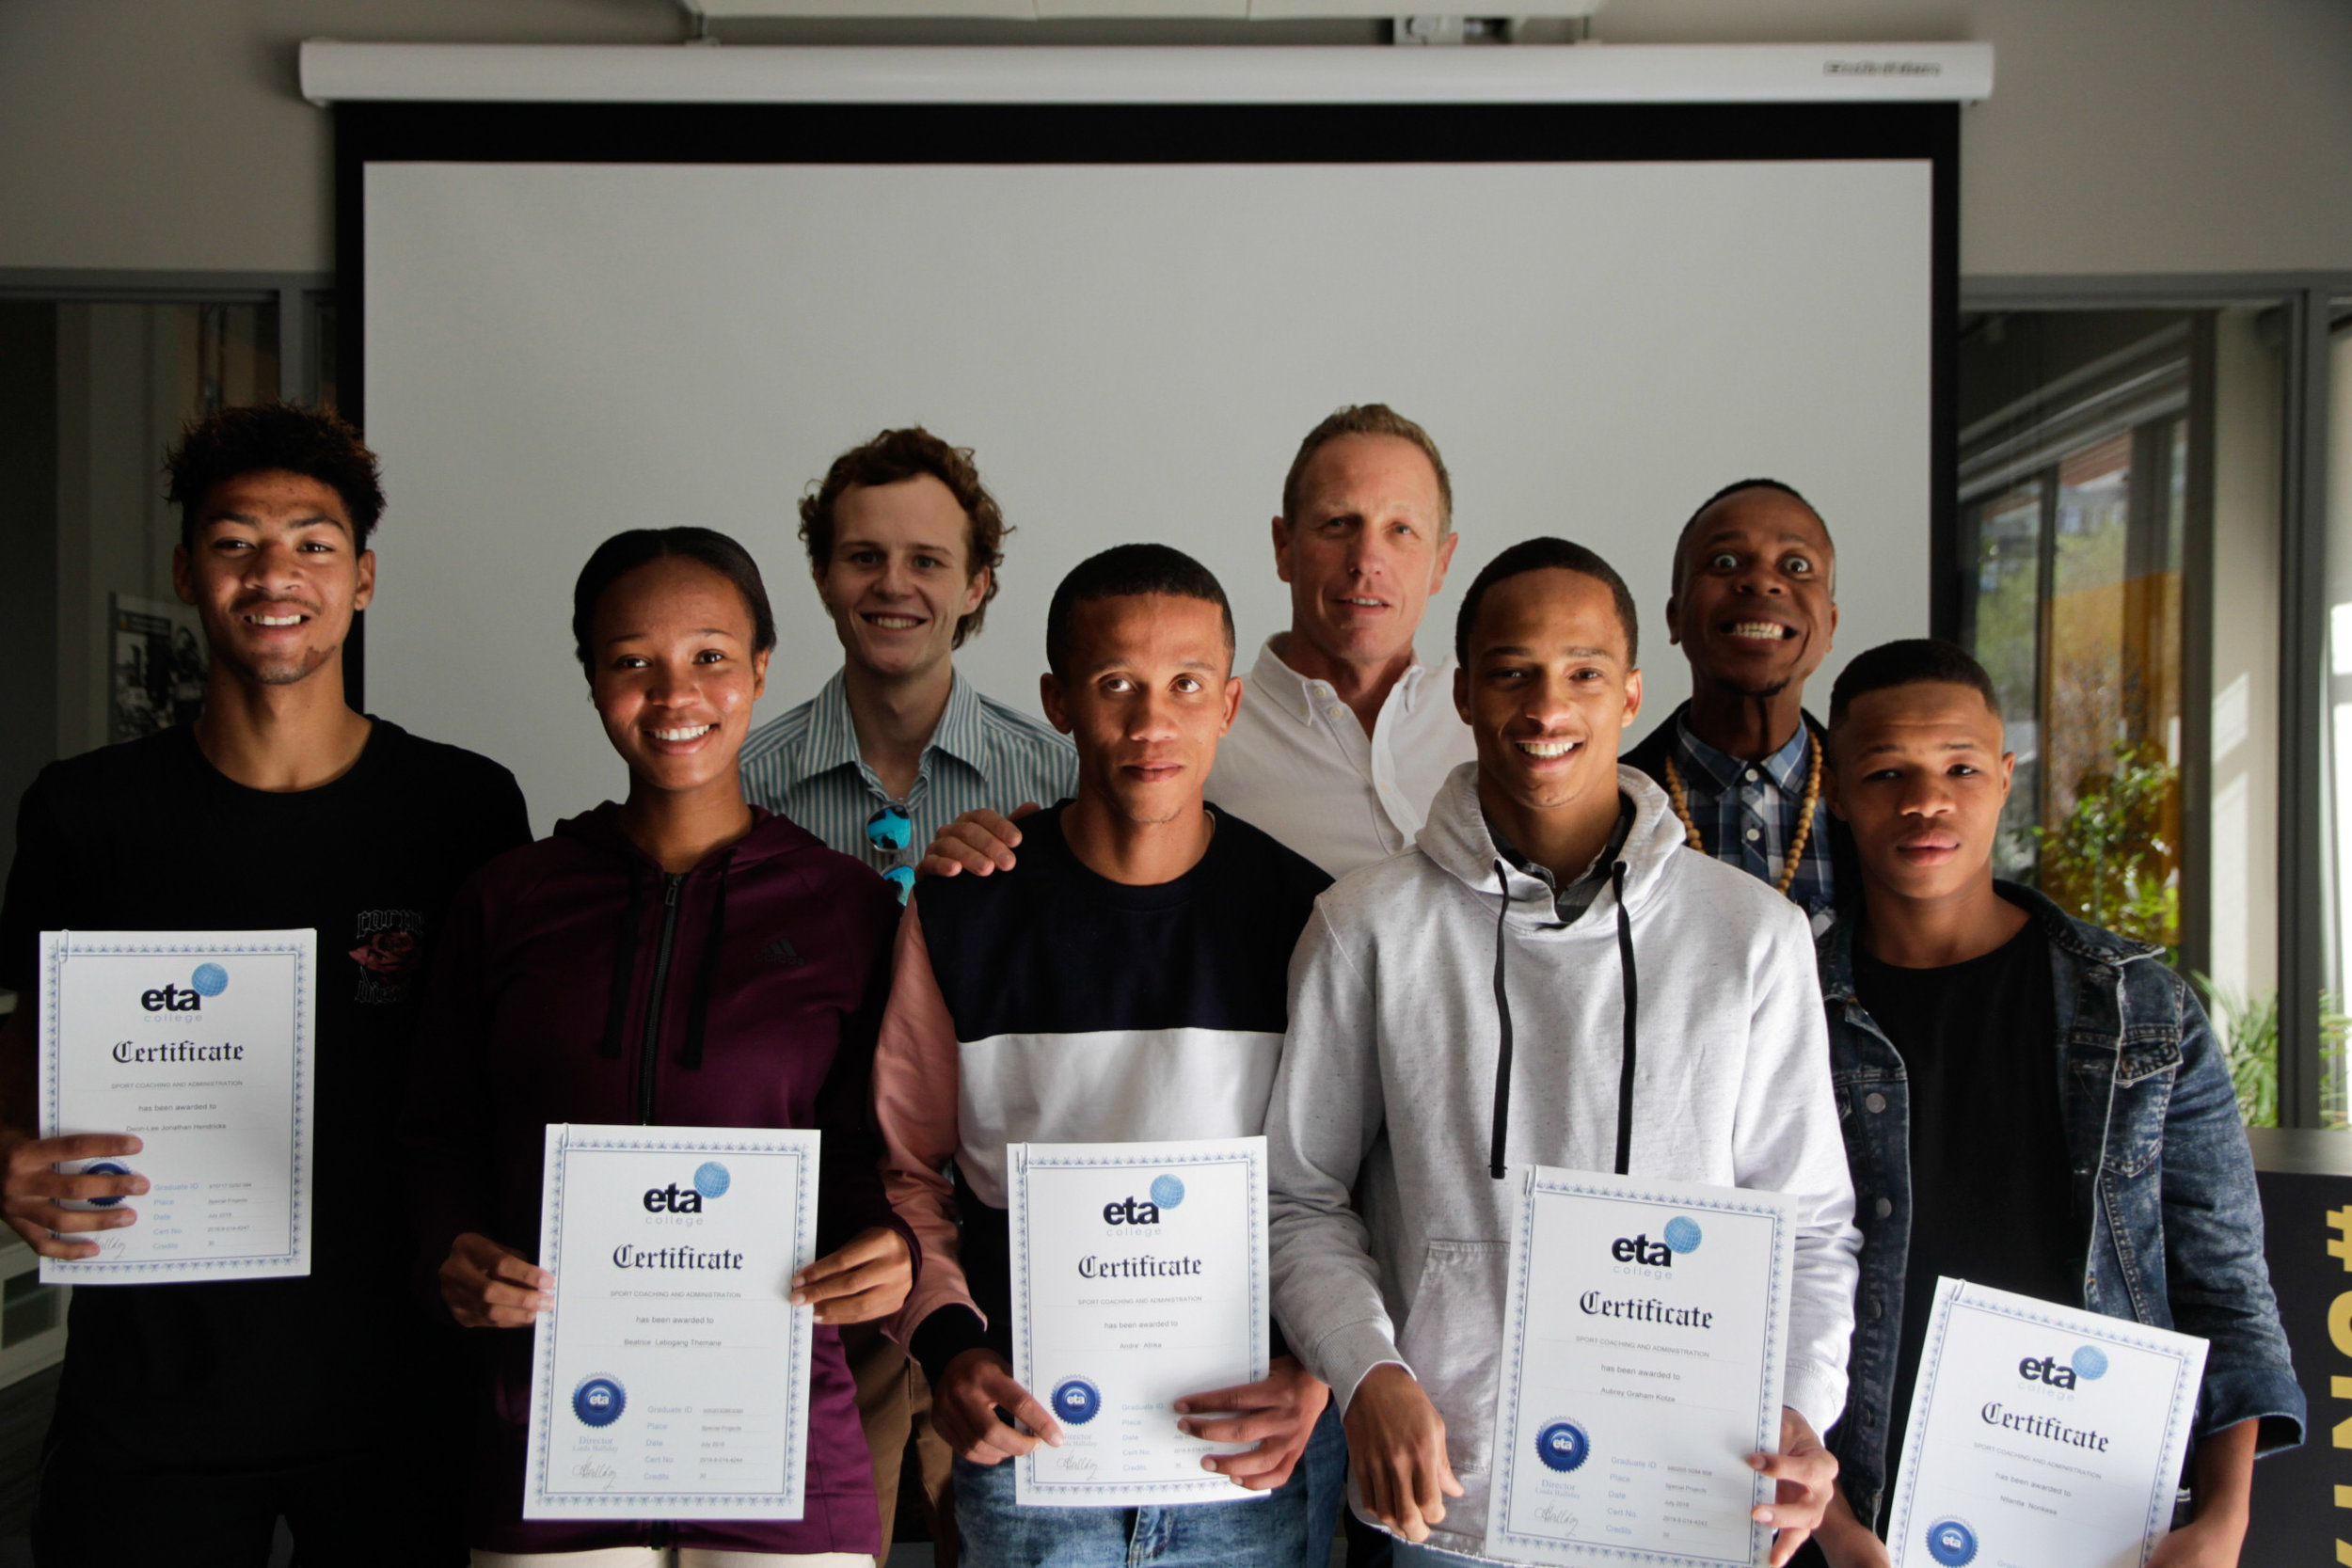 groups with certificate.jpg